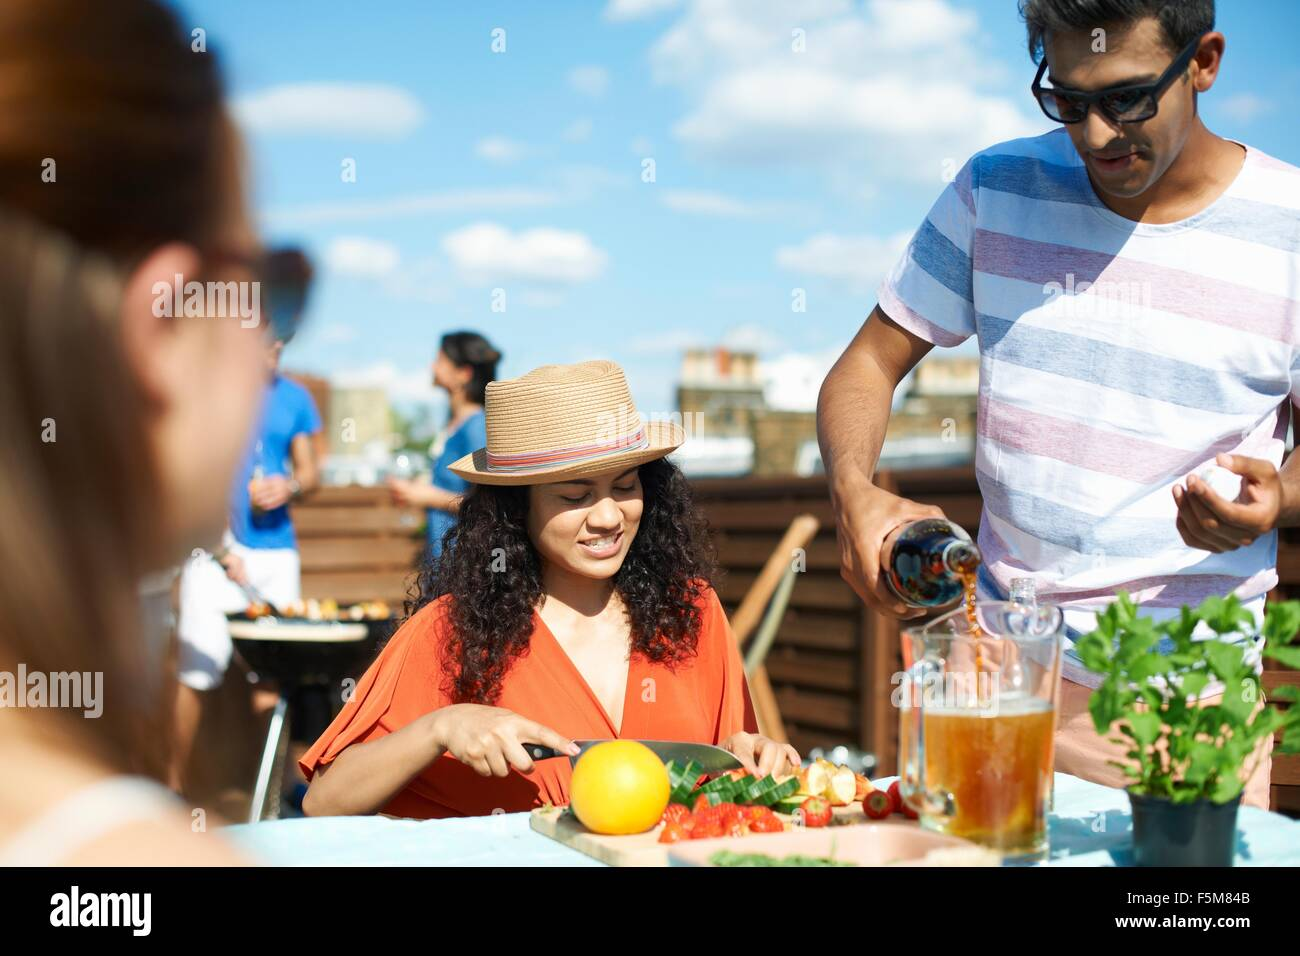 Adult friends preparing fresh punch cocktail at rooftop party - Stock Image